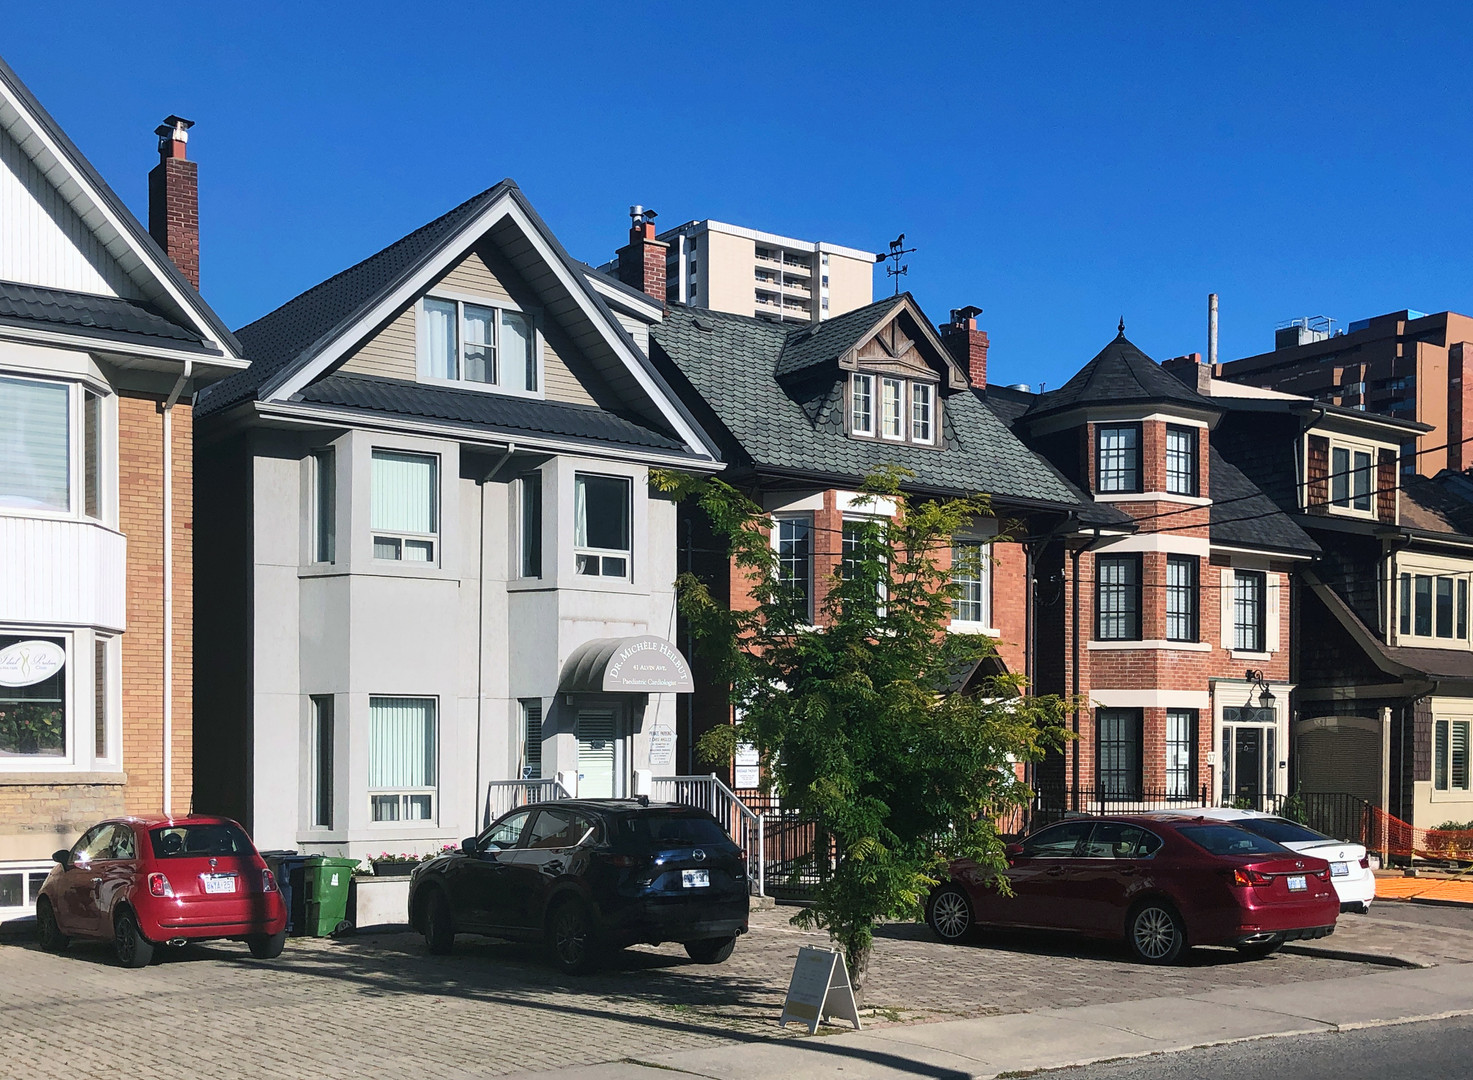 Businesses in single-detached houses along Heath Street